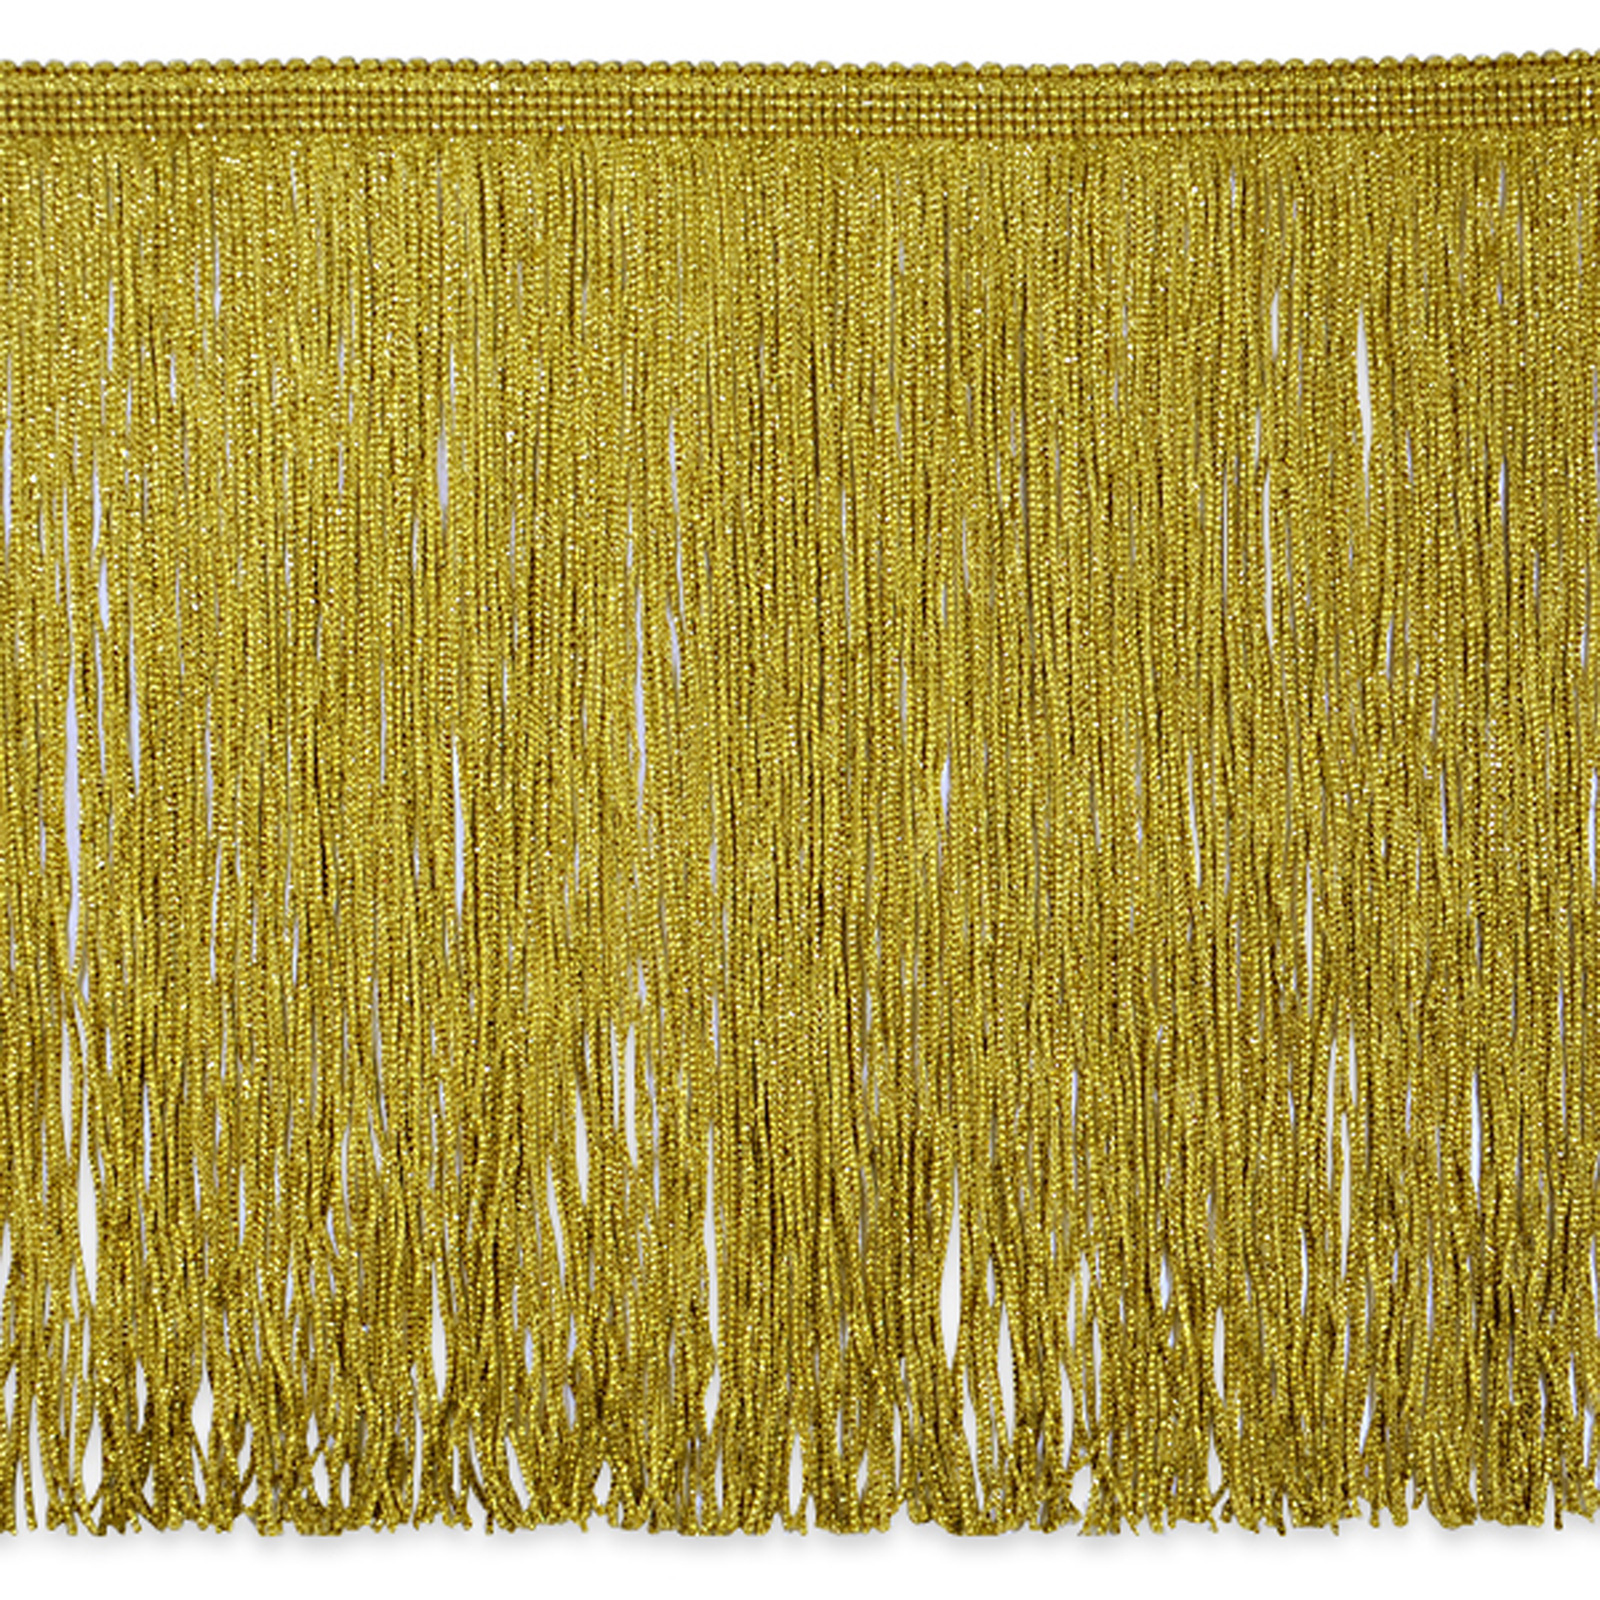 12'' Metallic Chainette Fringe Gold by Expo in USA